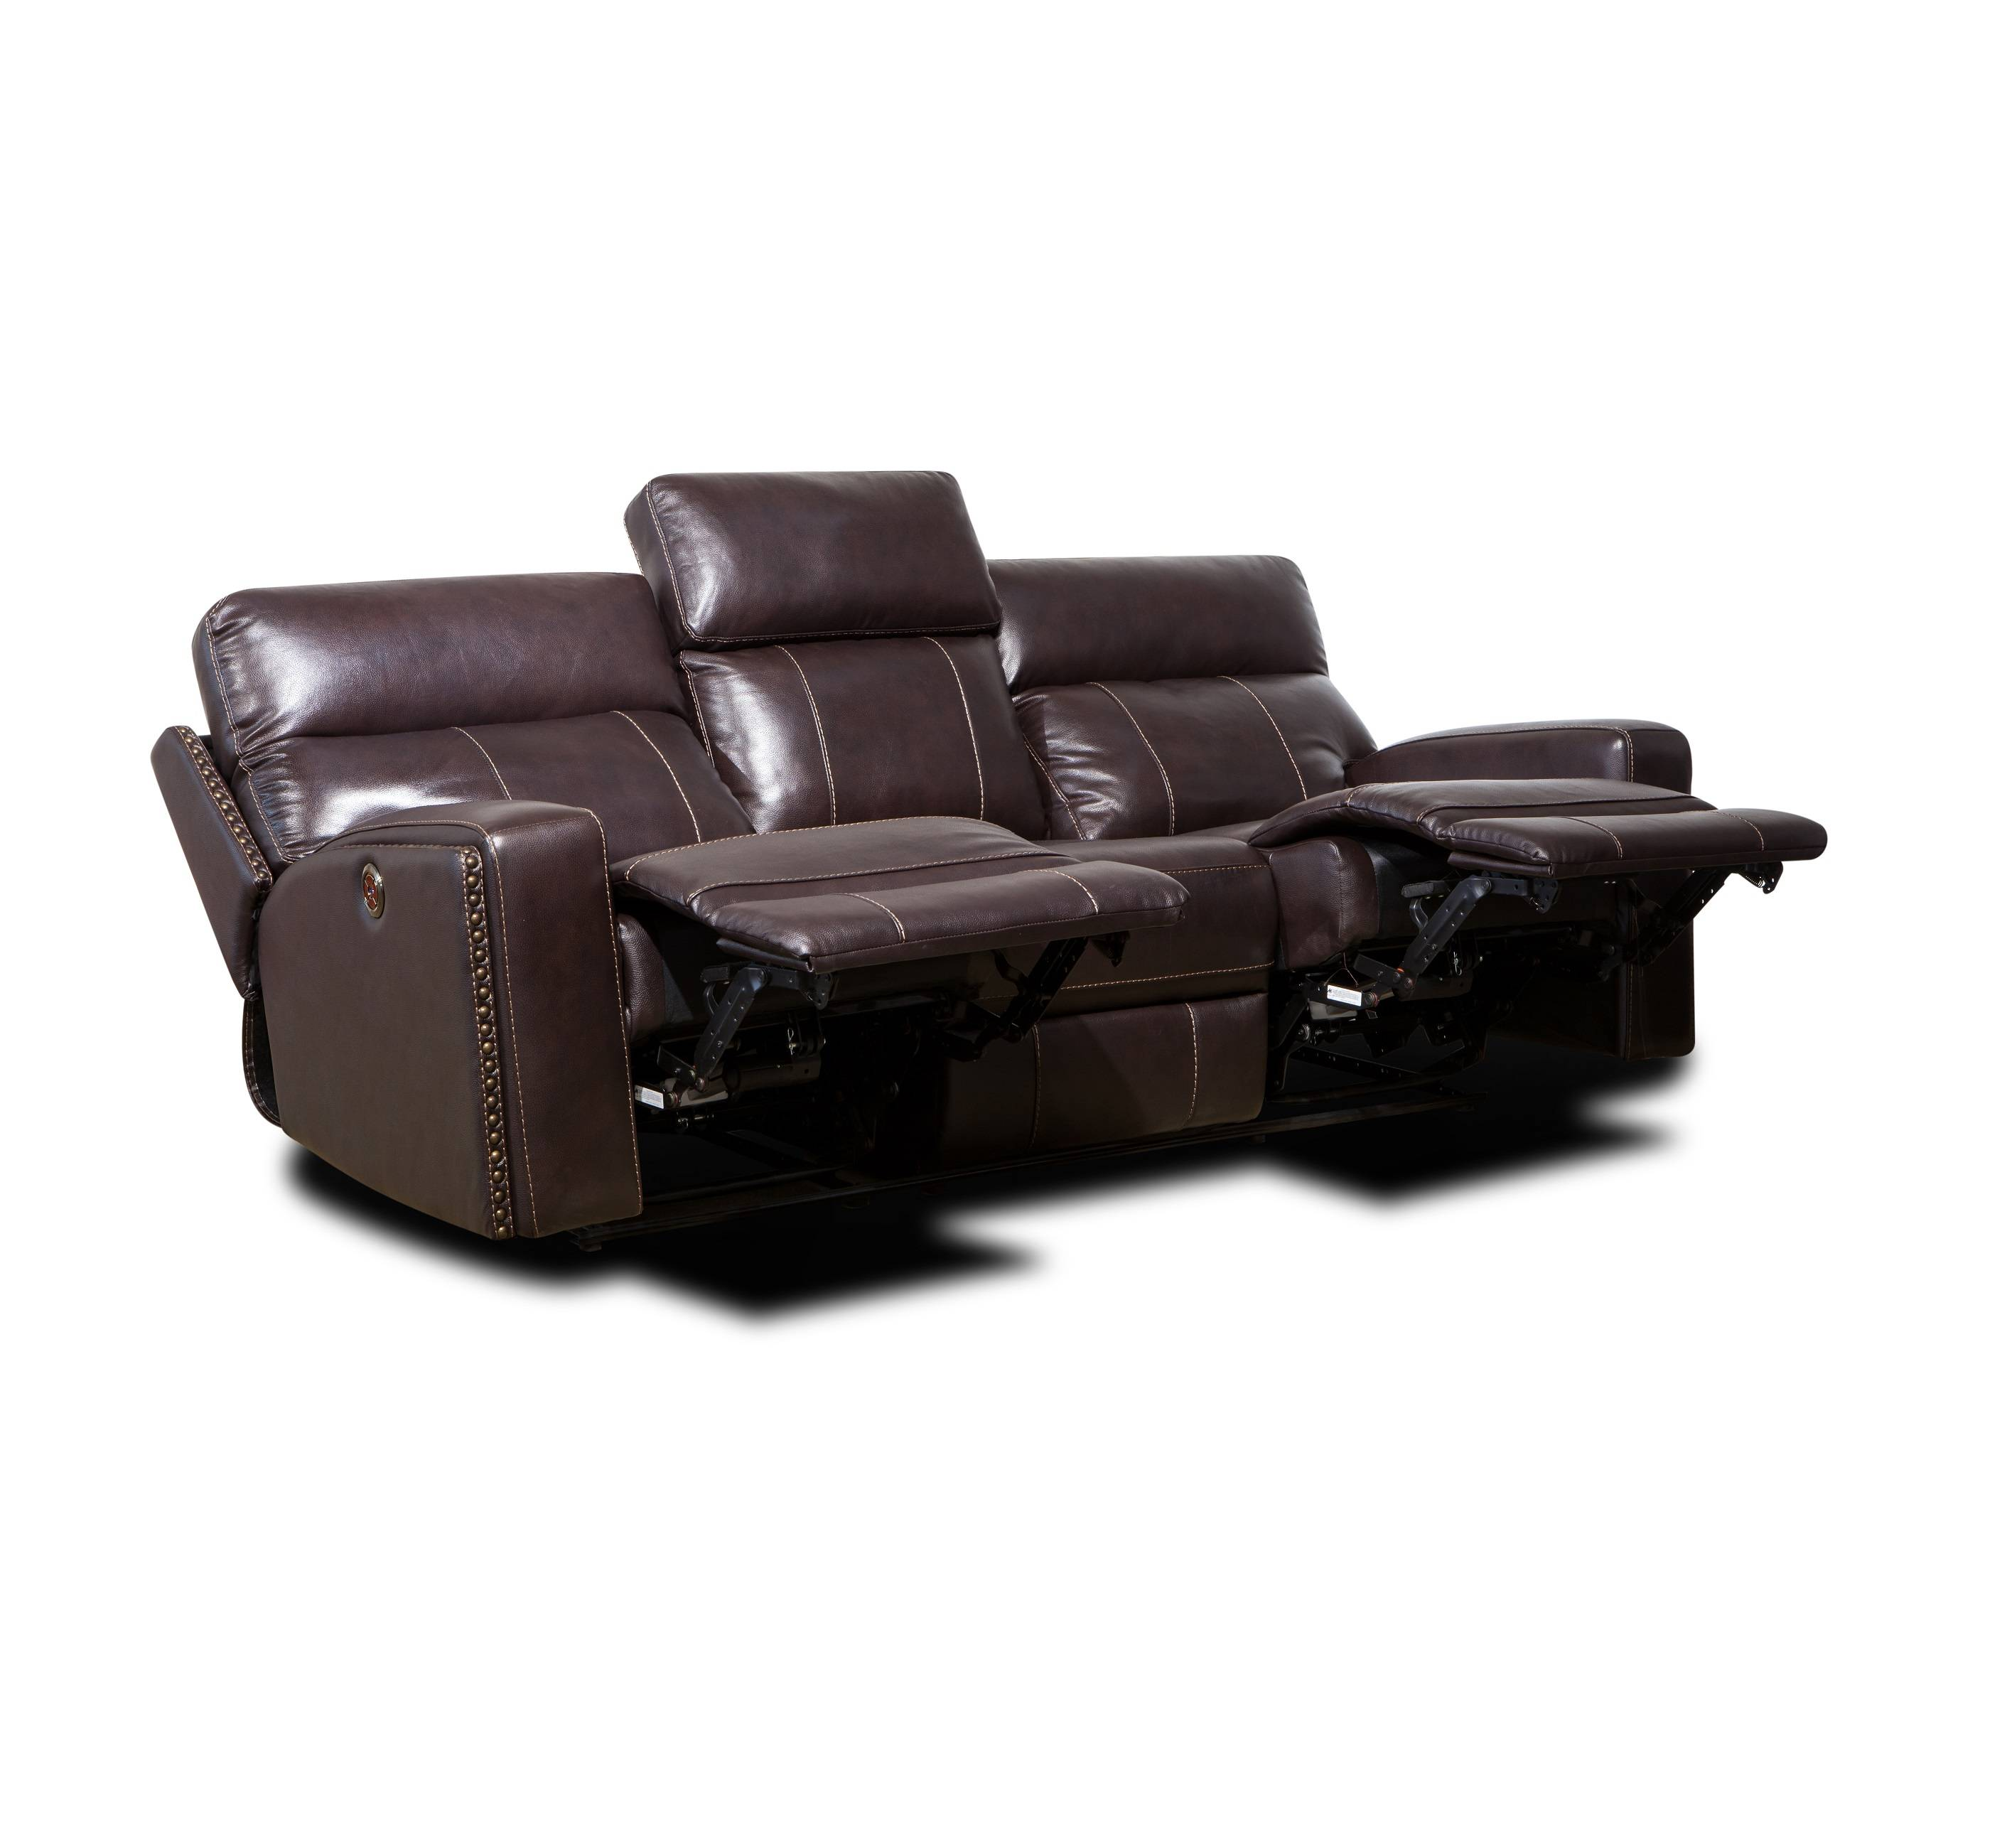 Fancy living room 1+2+3 lazy boy italy leather recliner sofa